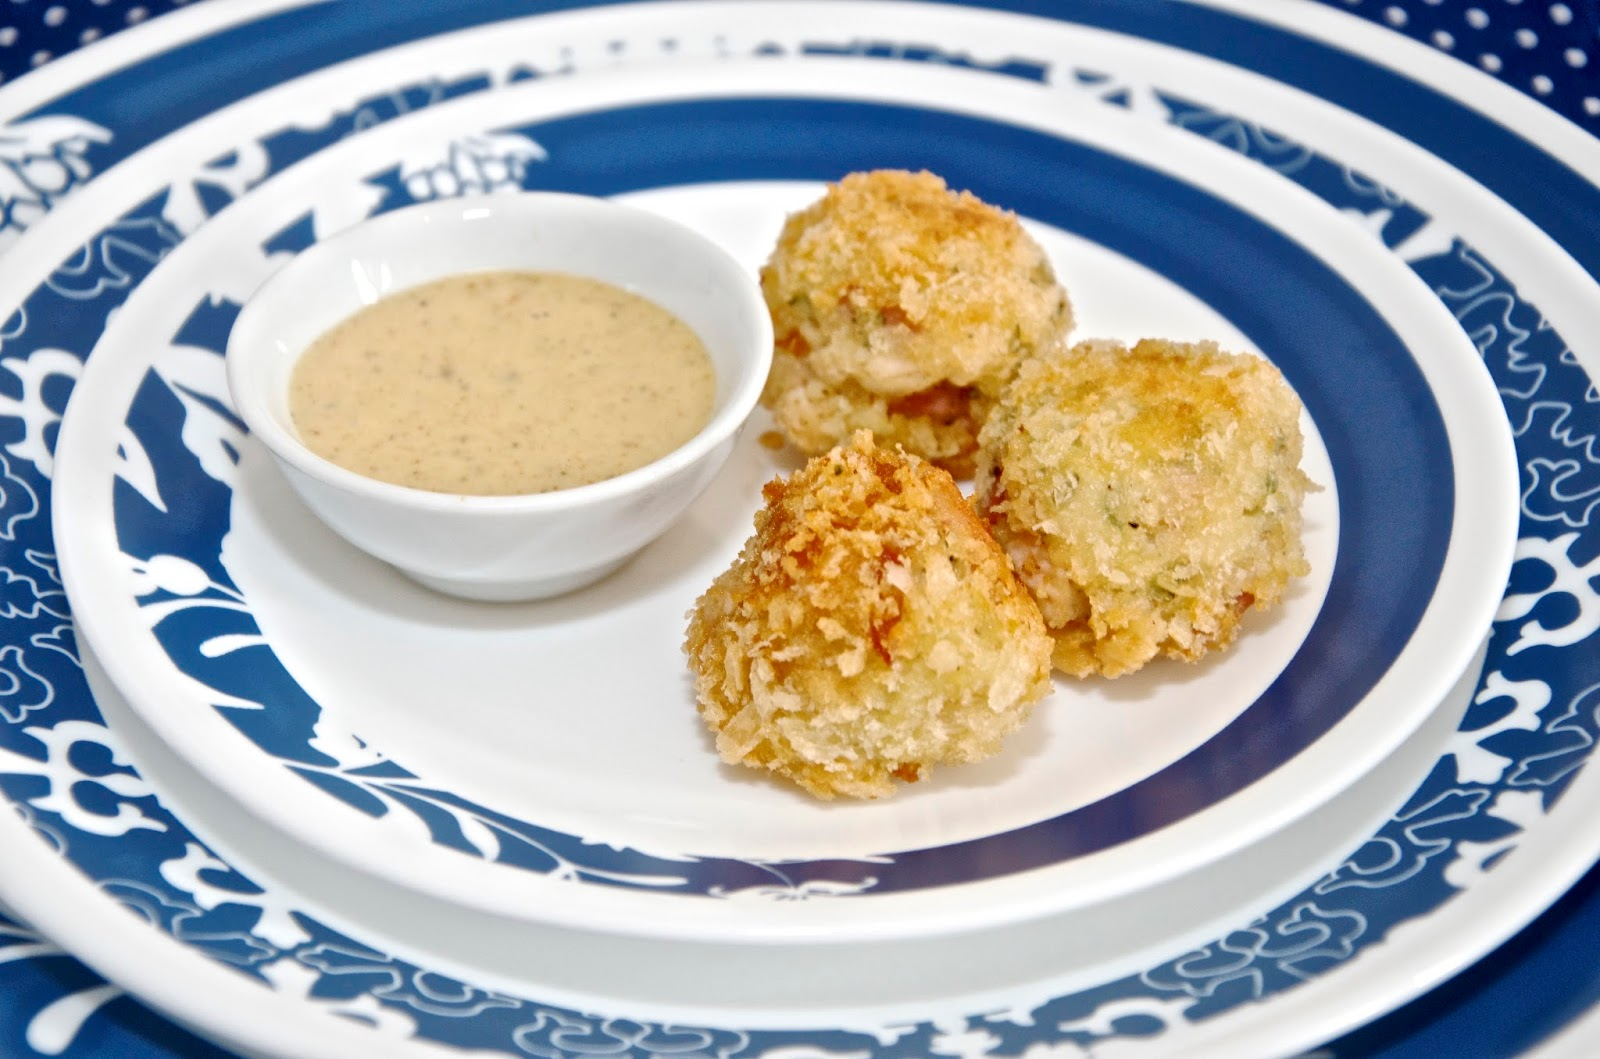 Spicy Honey Mustard Dipping Sauce with Potato, chicken and ham croquettes